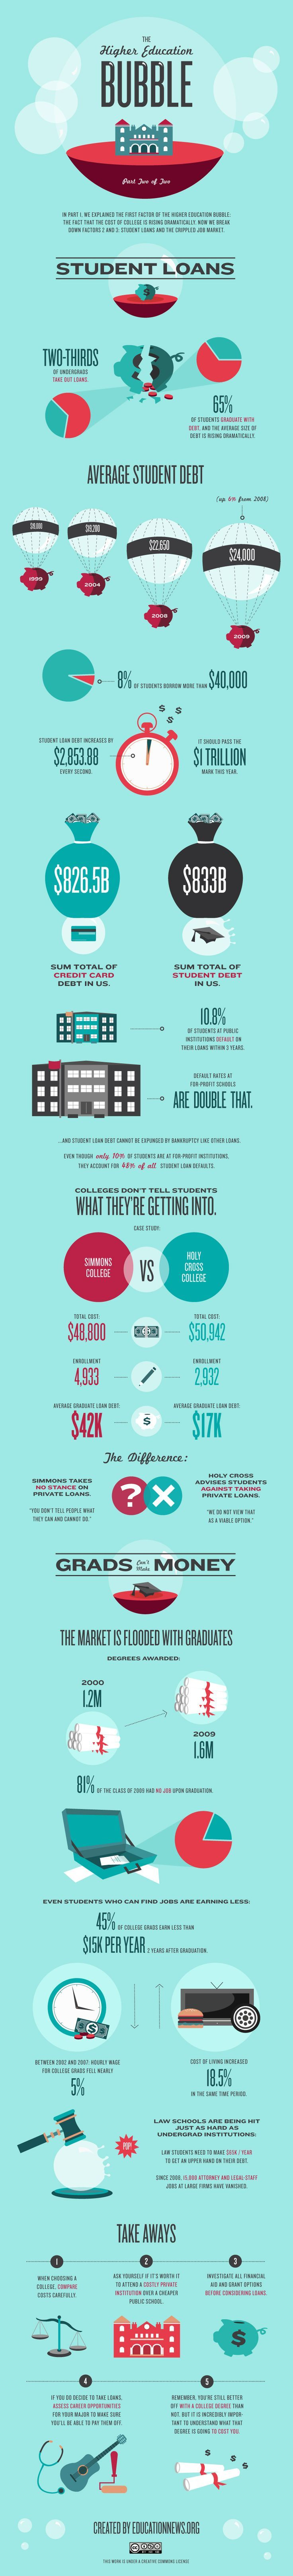 How Is The Higher Education Bubble Driving Up Costs Of College and Student Loans? #highered #infographic Pay off Debt, Student Loan Debt #debt